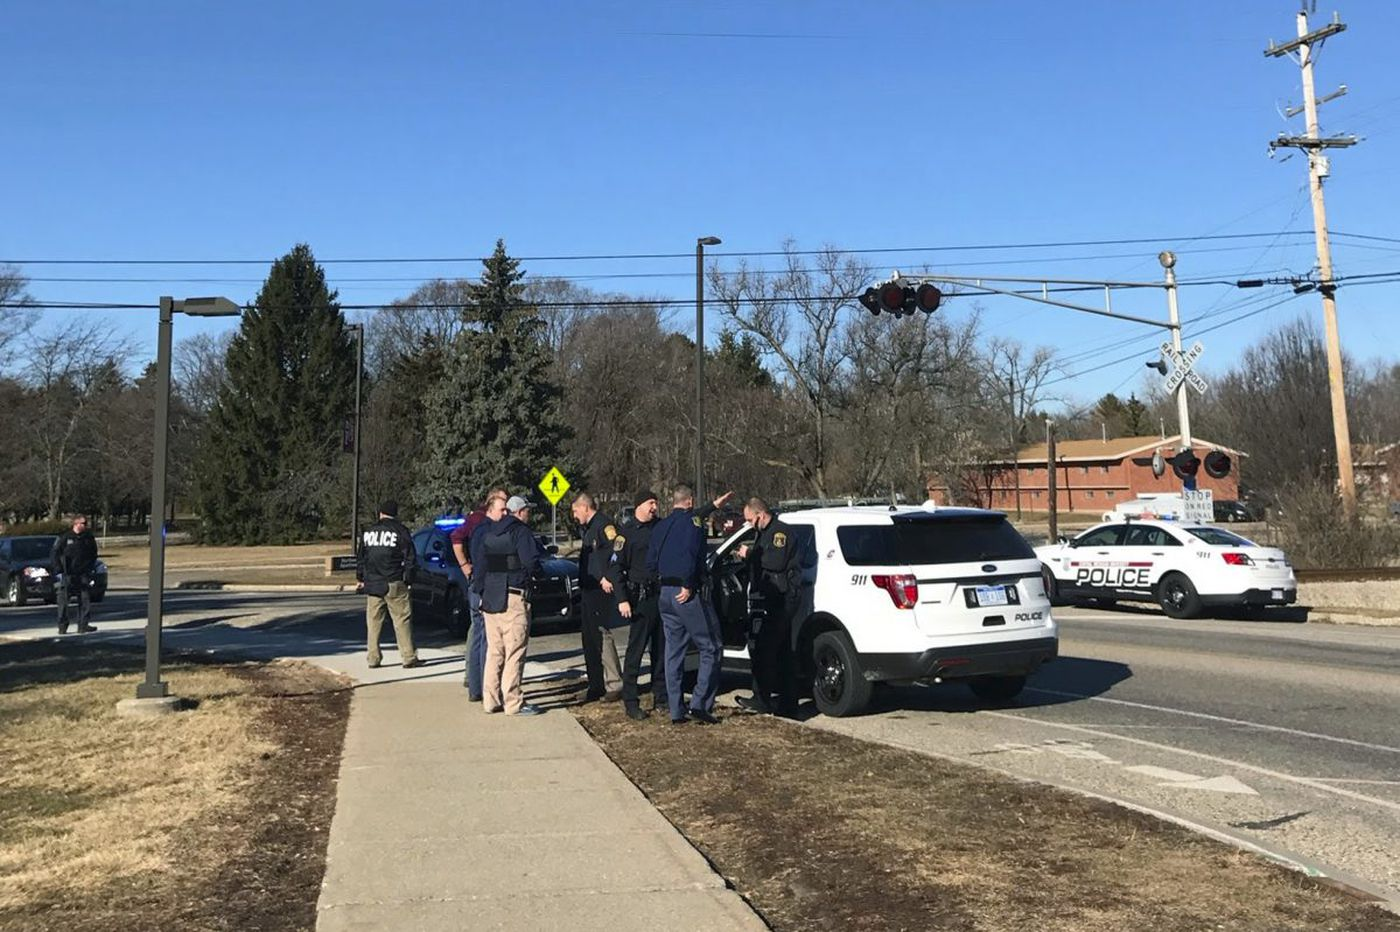 Reports: 19-year-old sought in shooting at Michigan college dorm